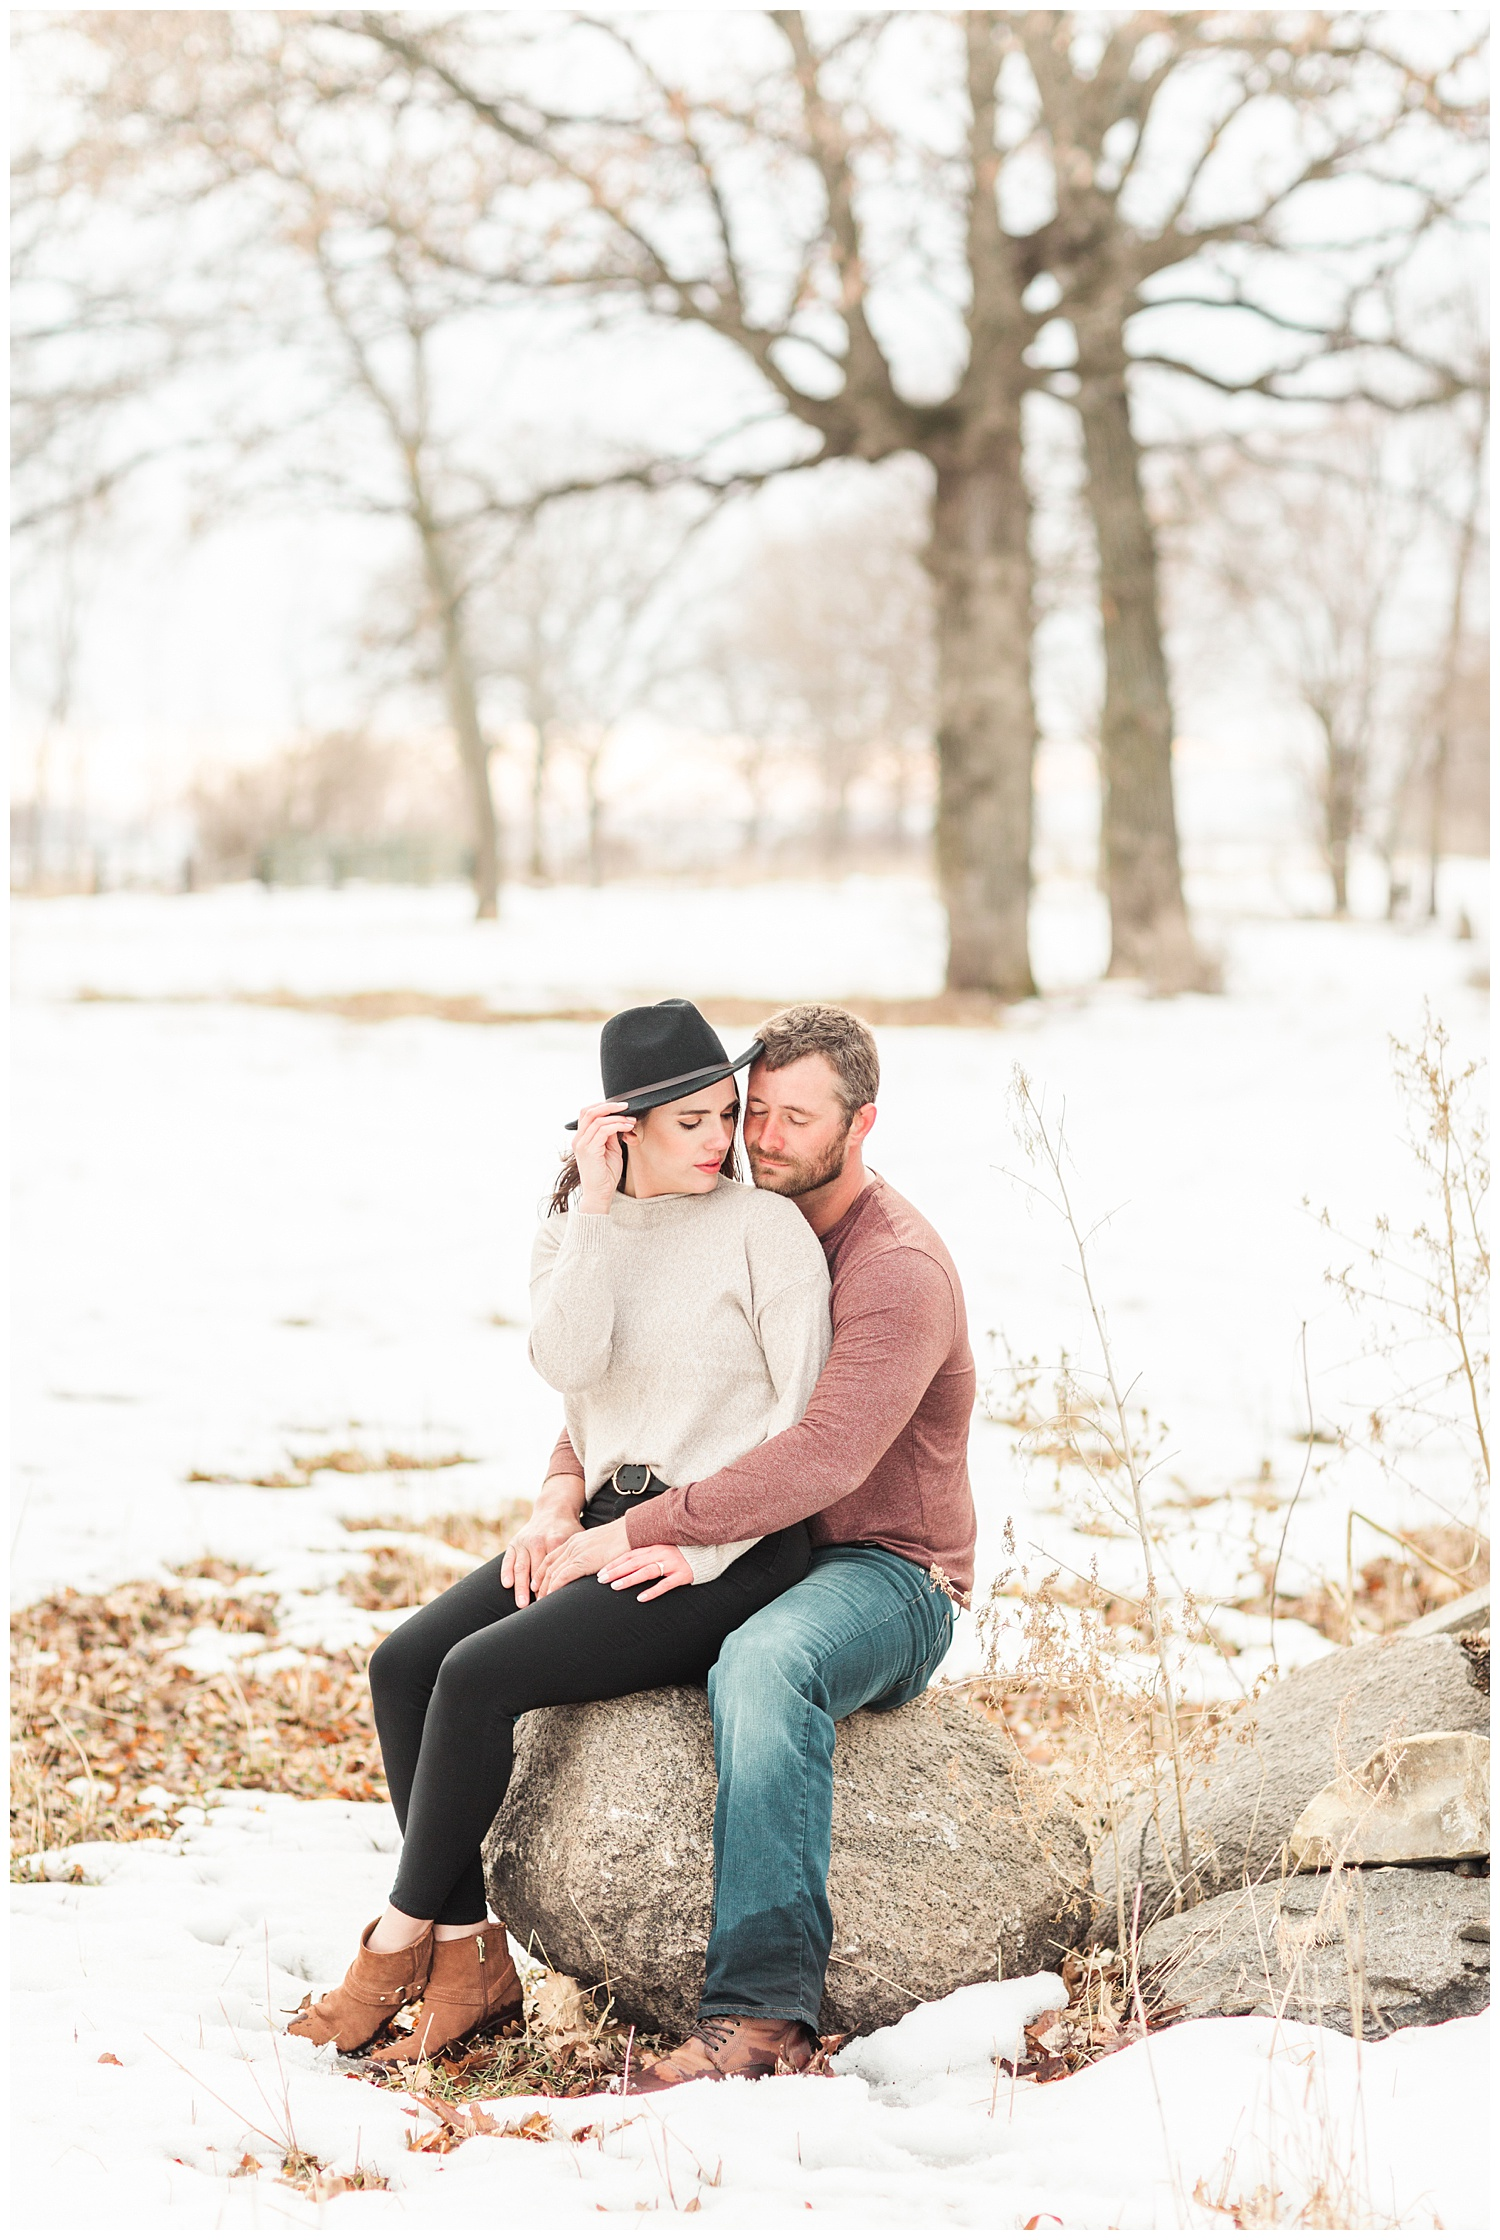 Iowa snowy winter engagement session with Renee and Cody | CB Studio